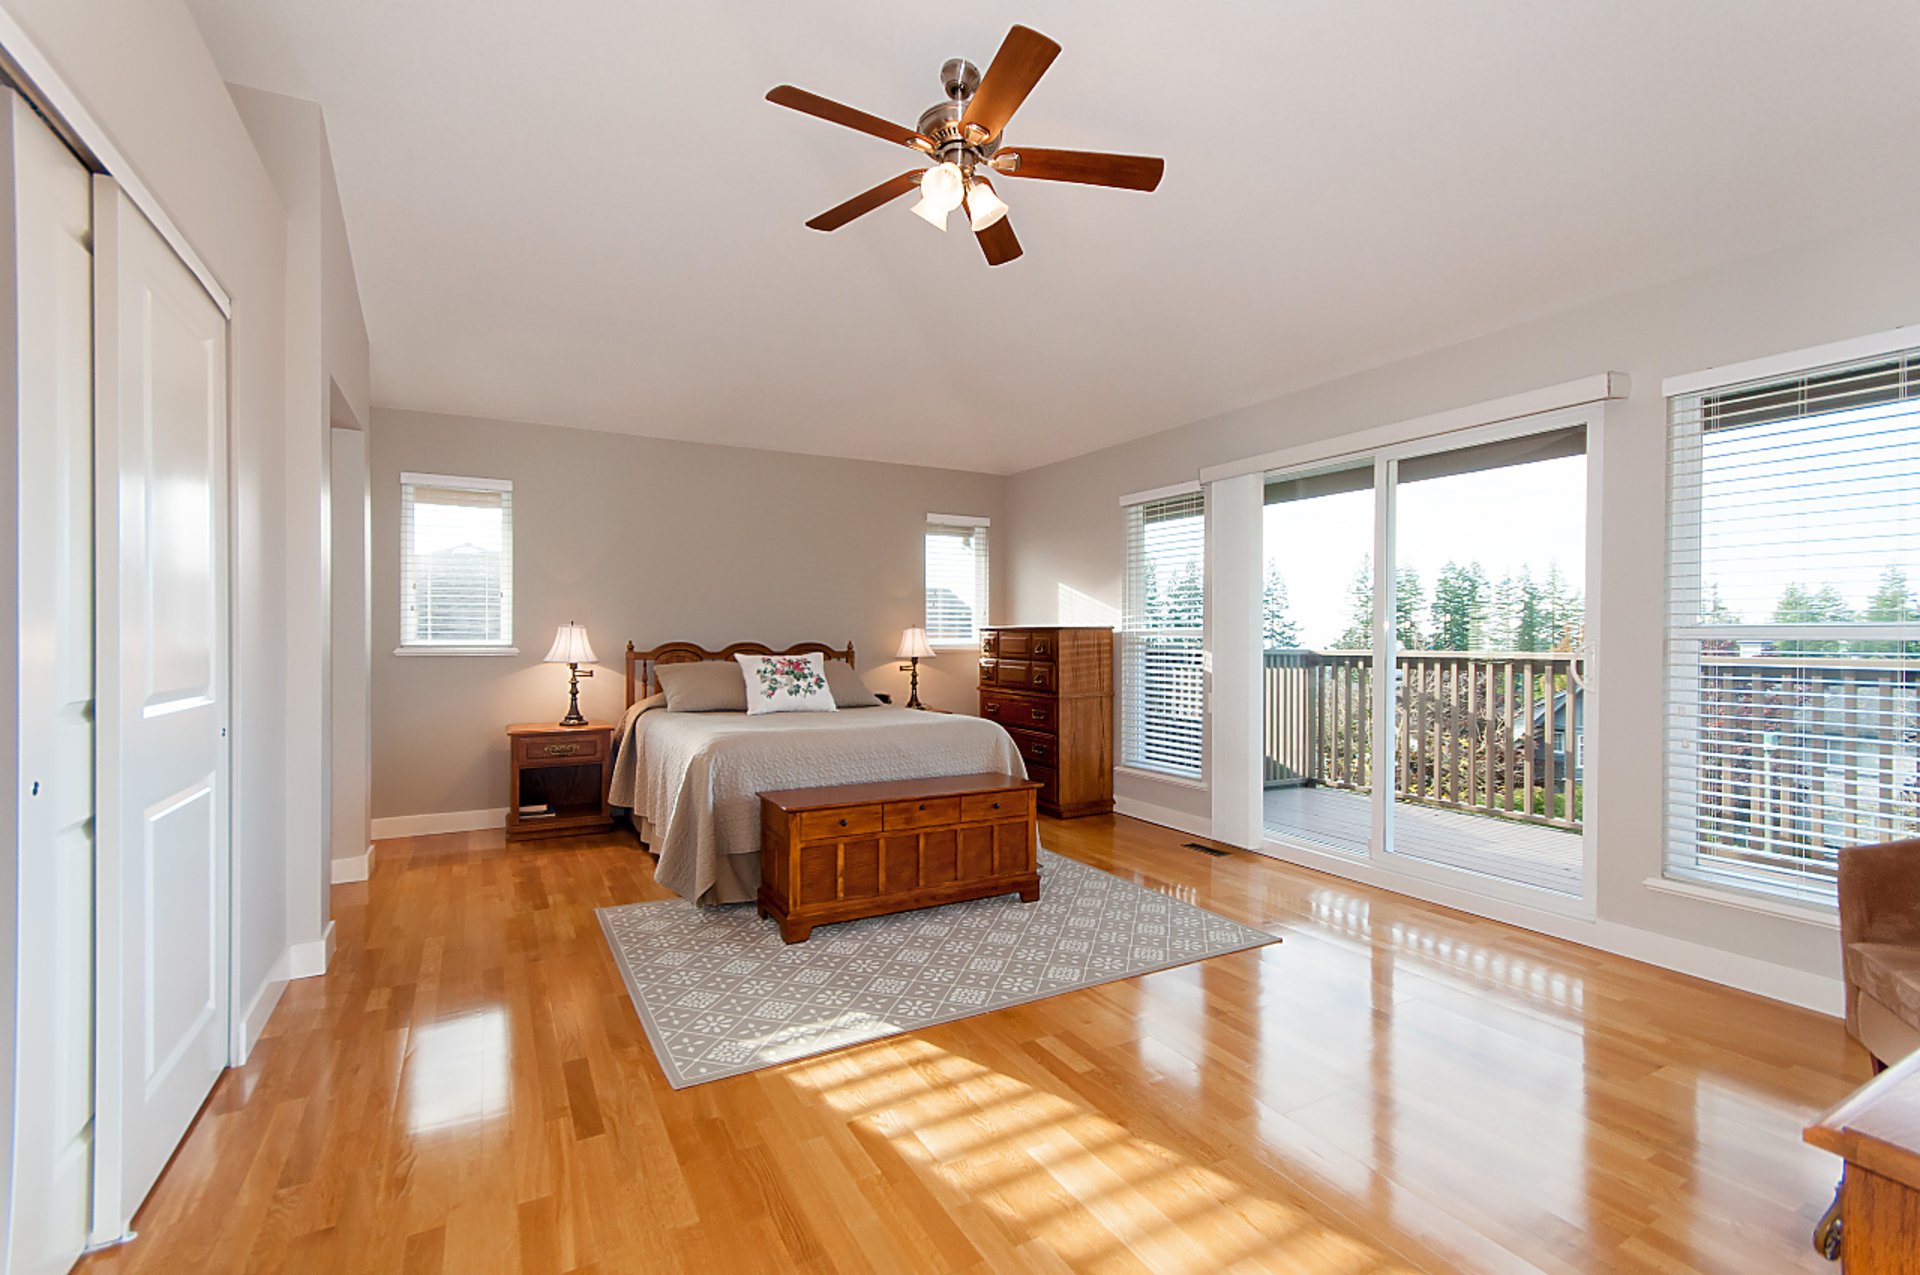 029 at 43 Maple Drive, Heritage Woods PM, Port Moody